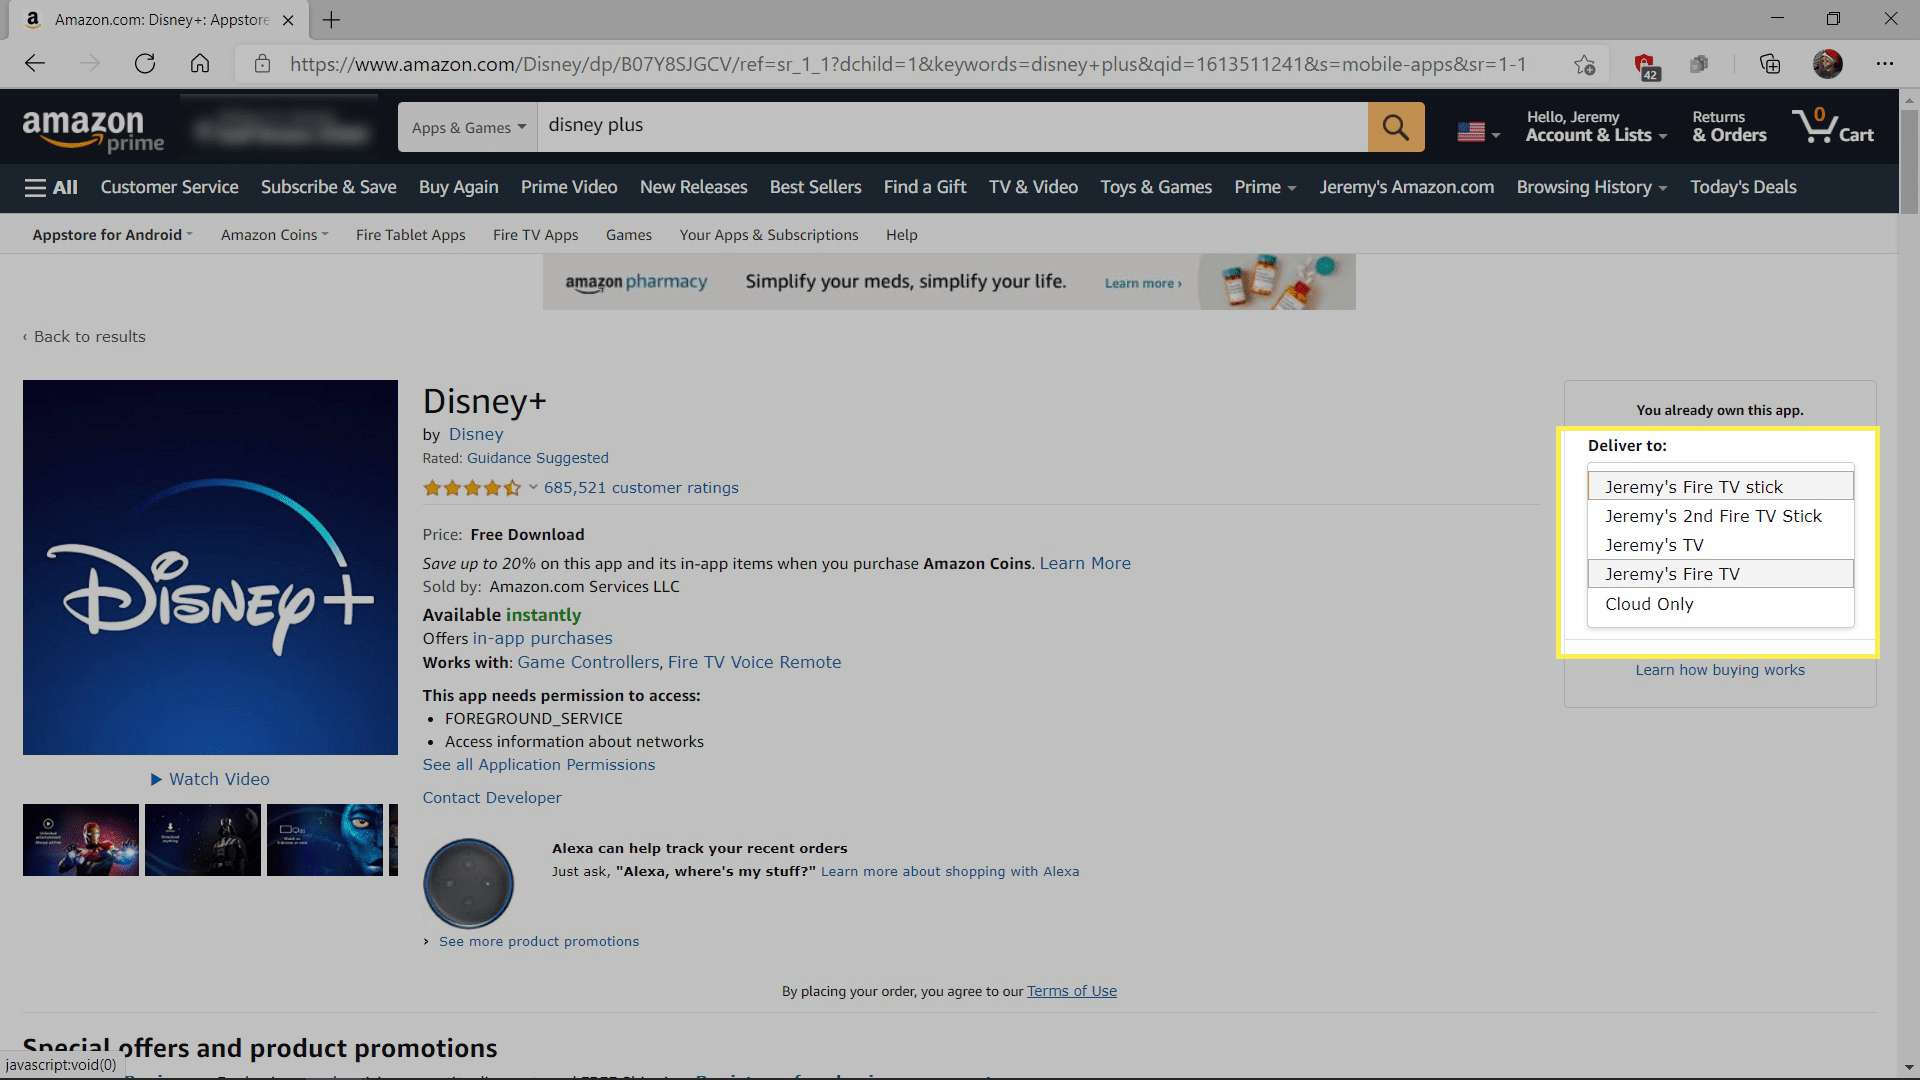 Selecting a Fire TV on Amazon.